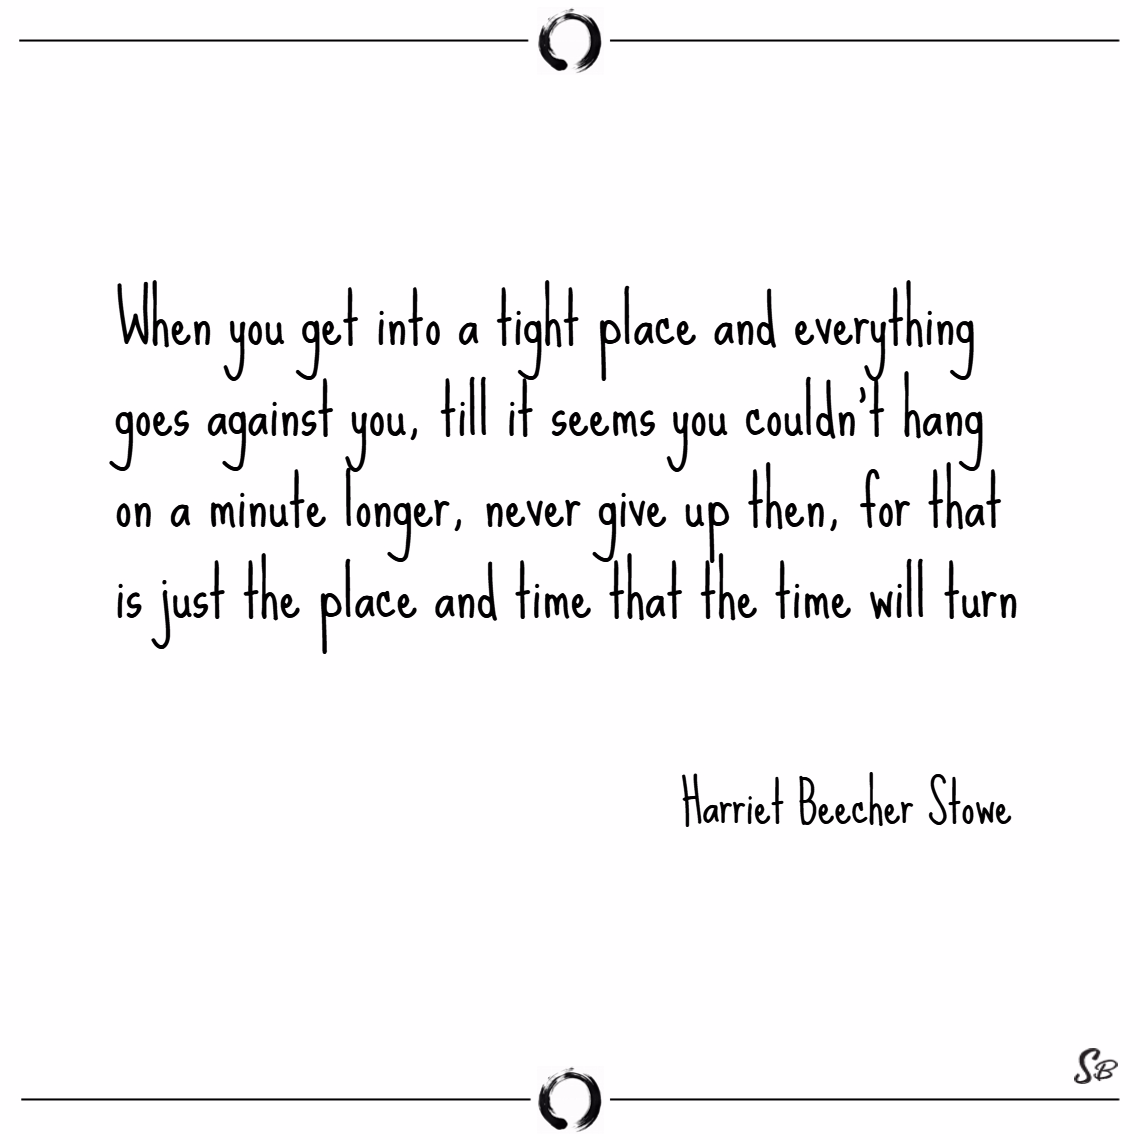 When you get into a tight place and everything goes against you, till it seems you couldn't hang on a minute longer, never give up then. – harriet beecher sto